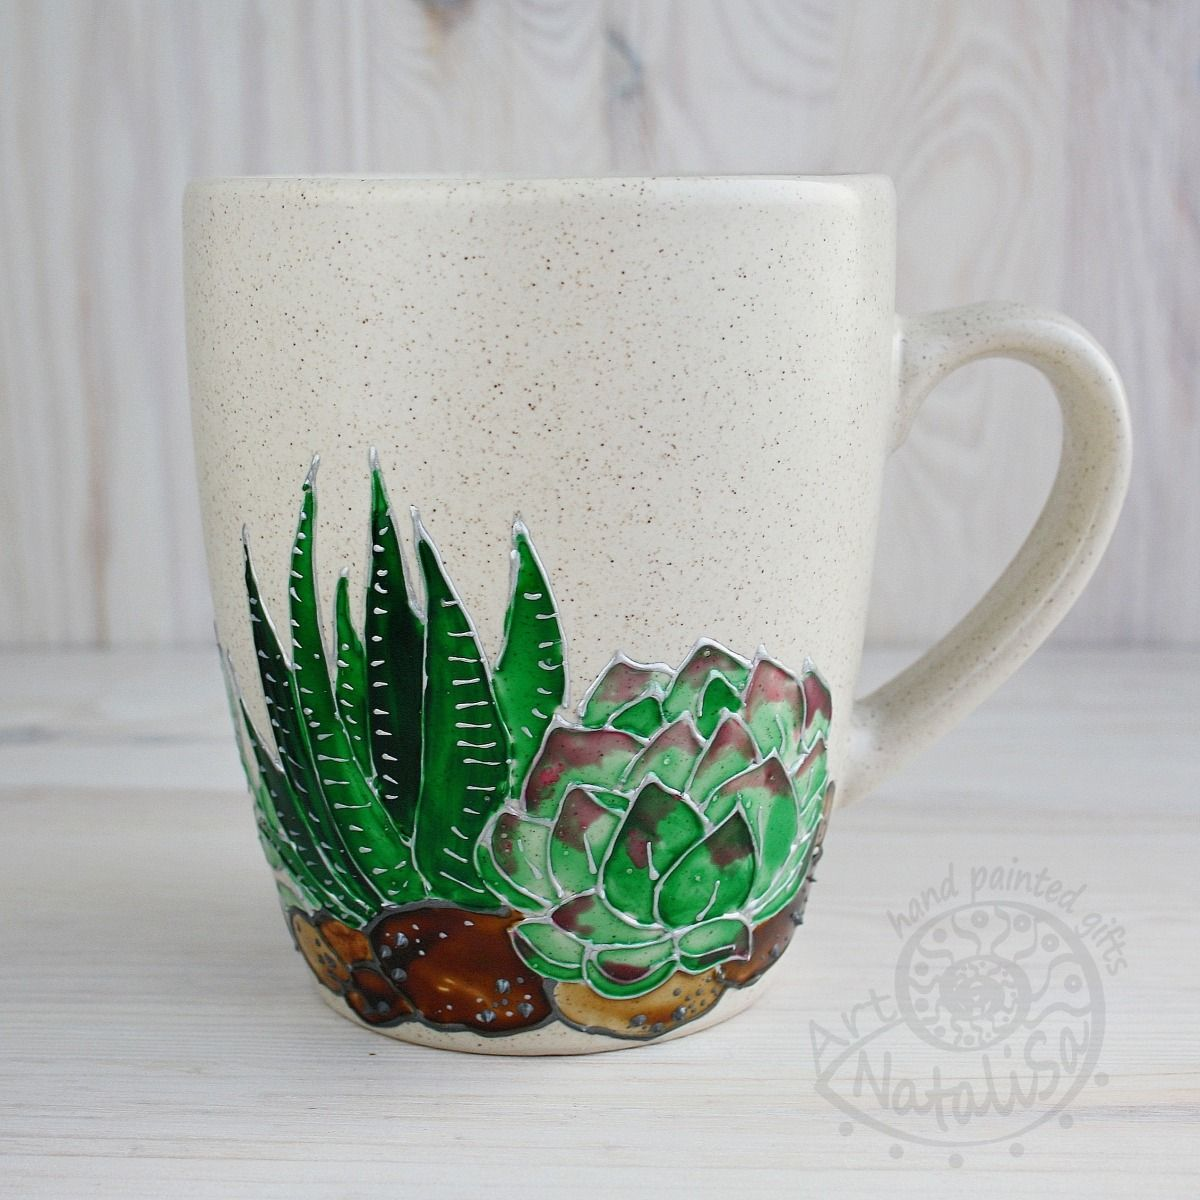 Http Sosuperawesome Com Post 169012664809 Hand Painted Mugs By